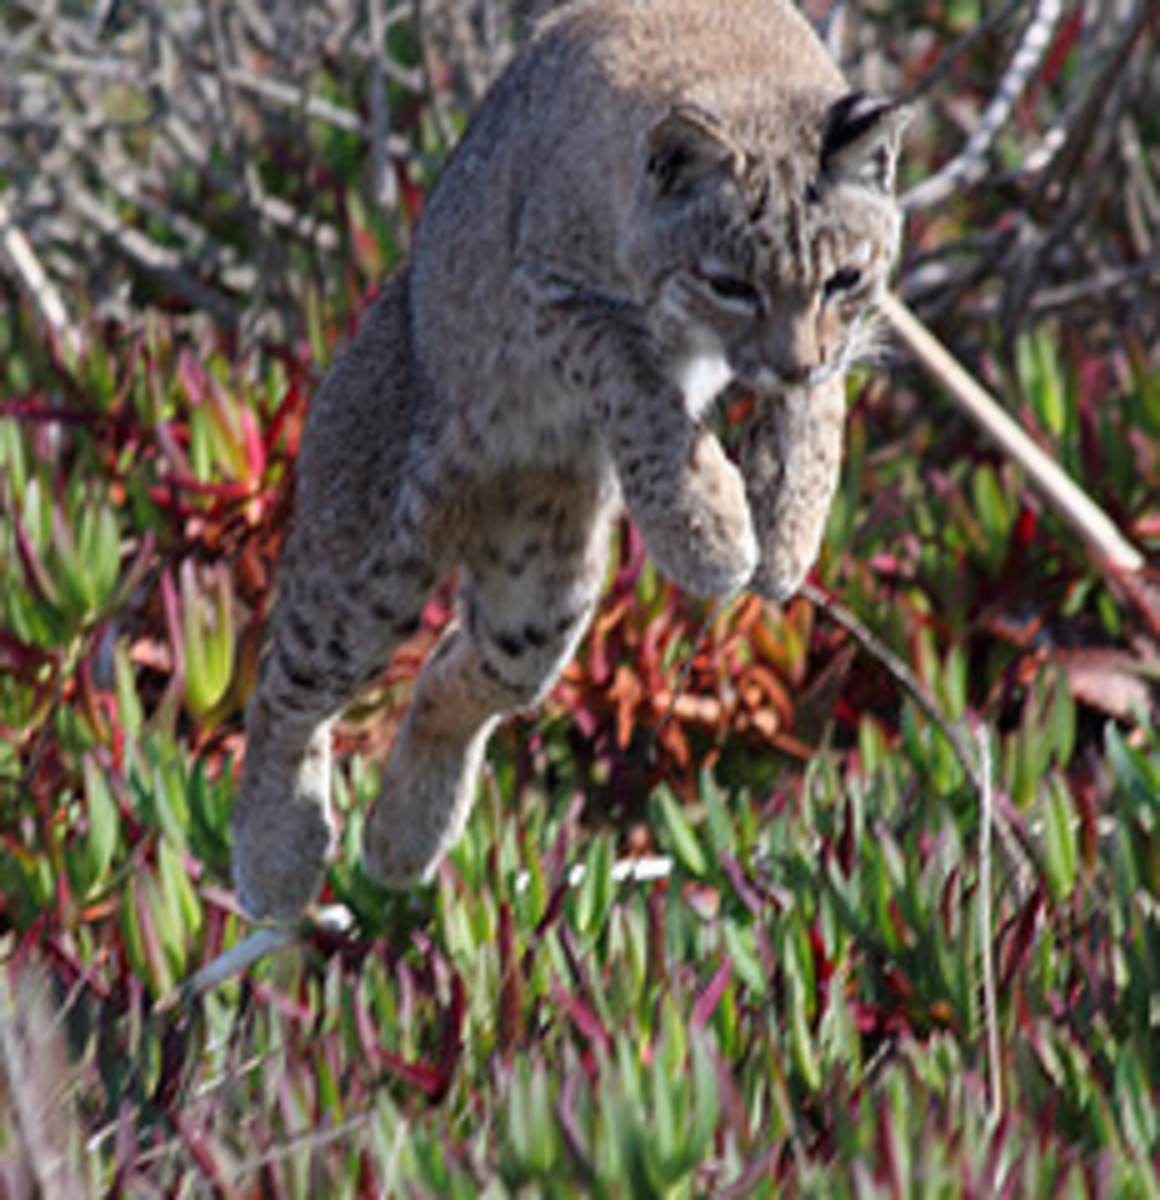 Bobcats live in Coconino National Forest